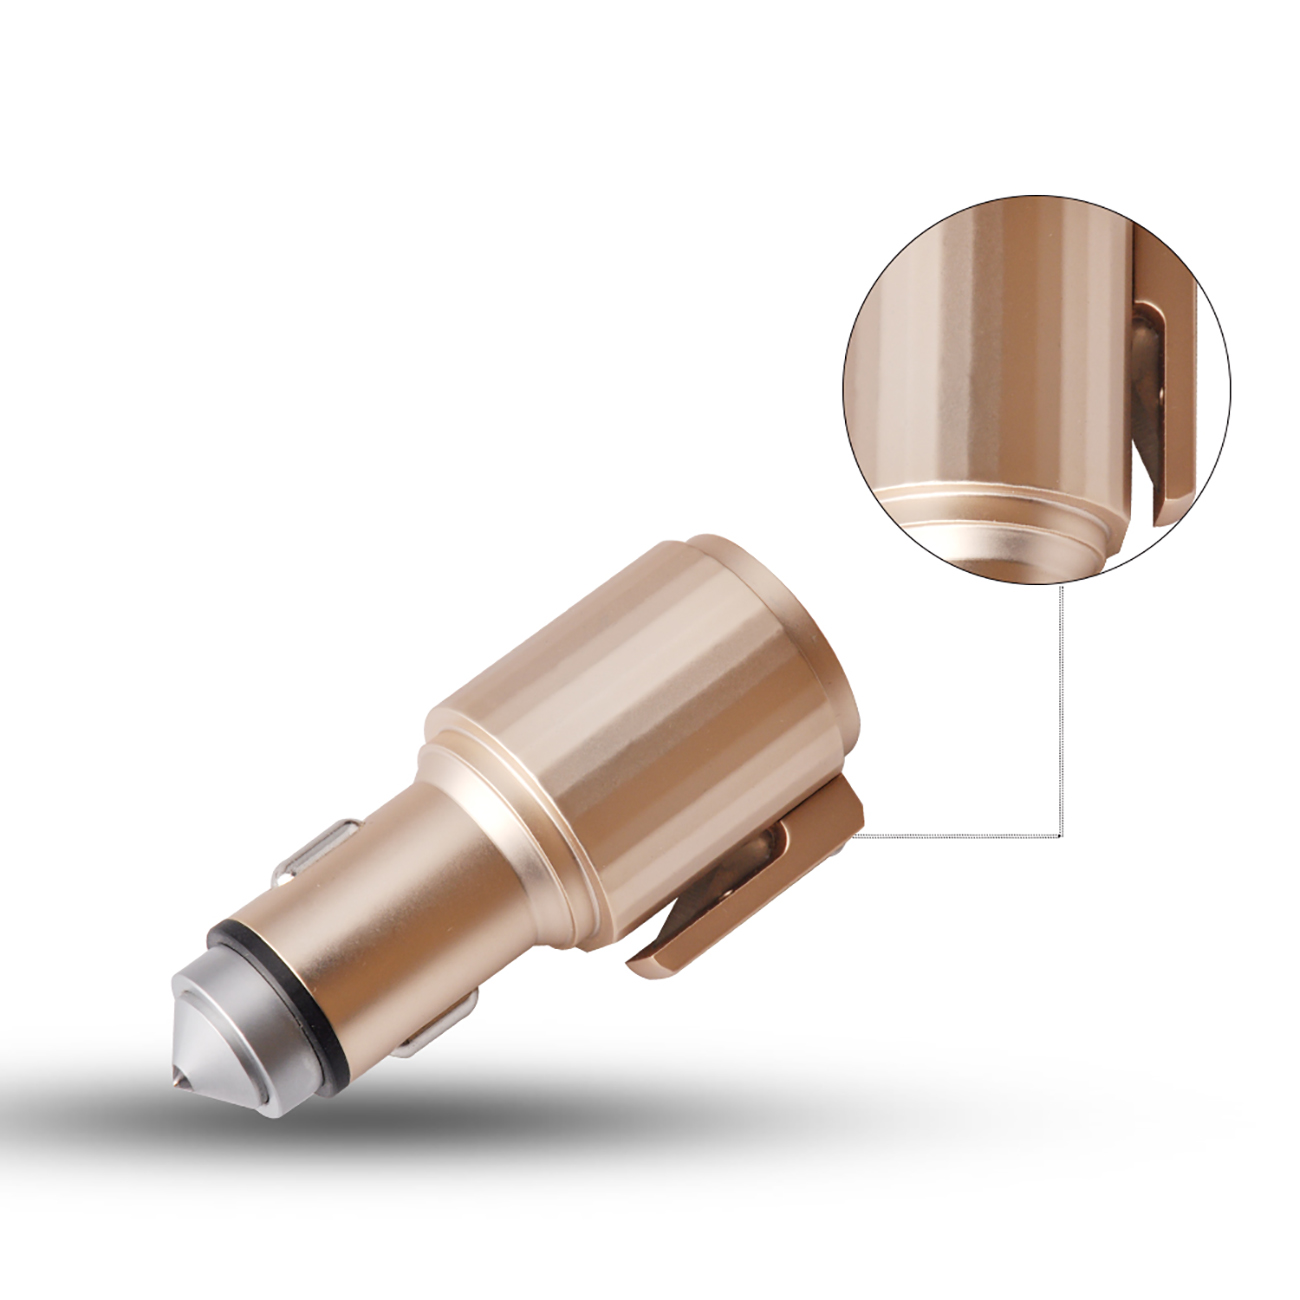 Quick Car Charger, 4.8A Dual USB Fast car charger with Life Guard Charge Technology In Gold